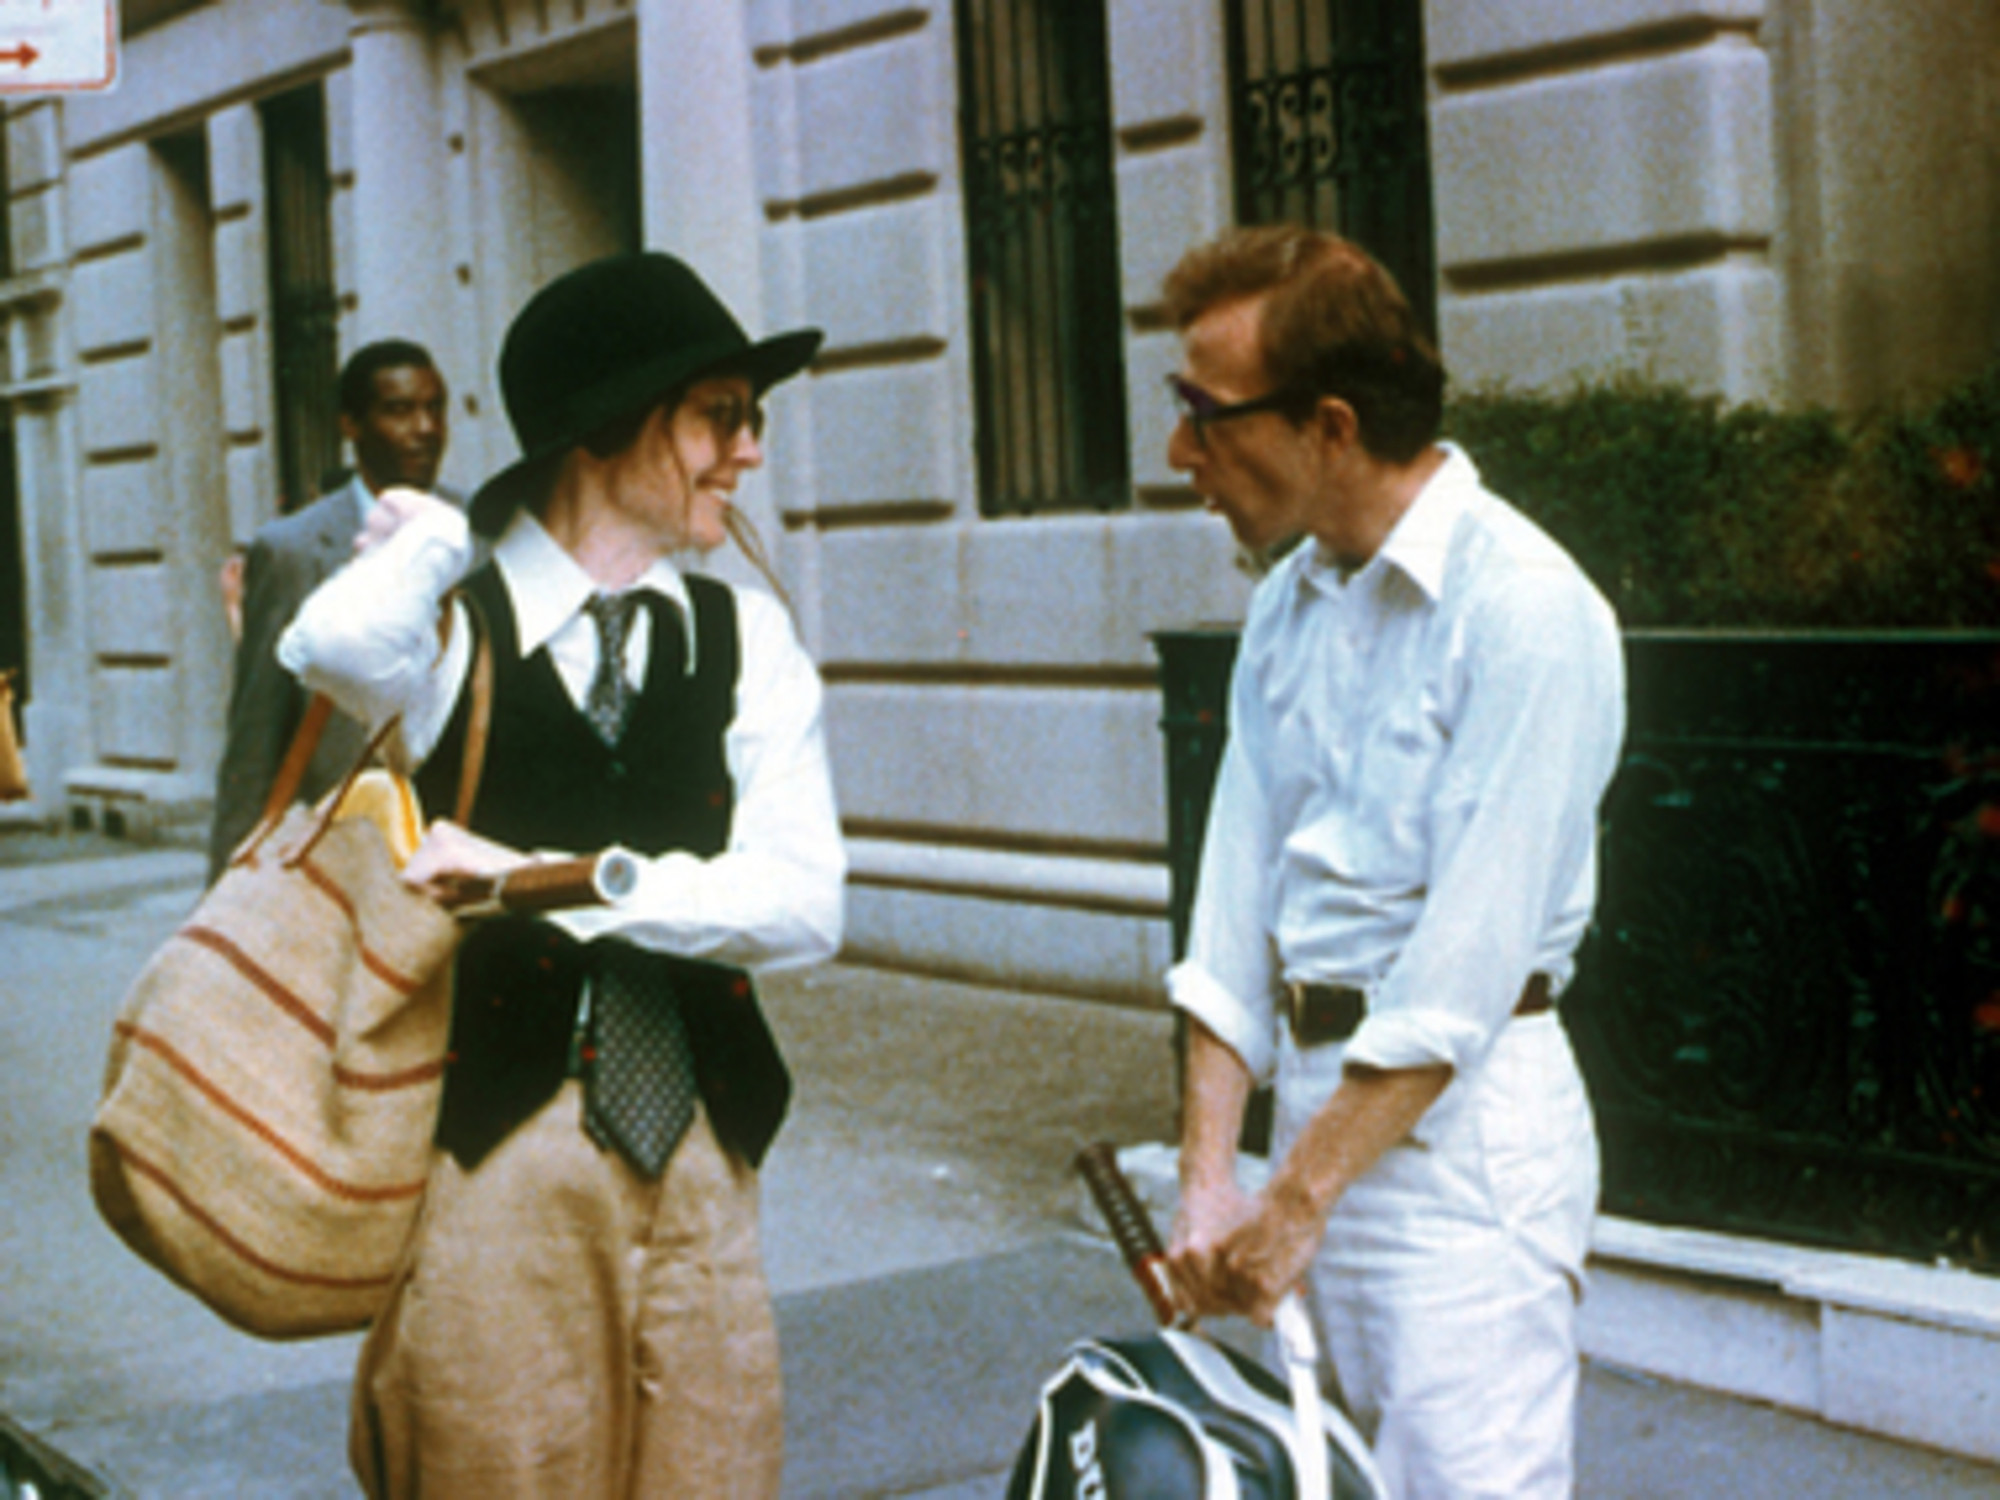 Annie Hall. 1977. USA. Directed by Woody Allen